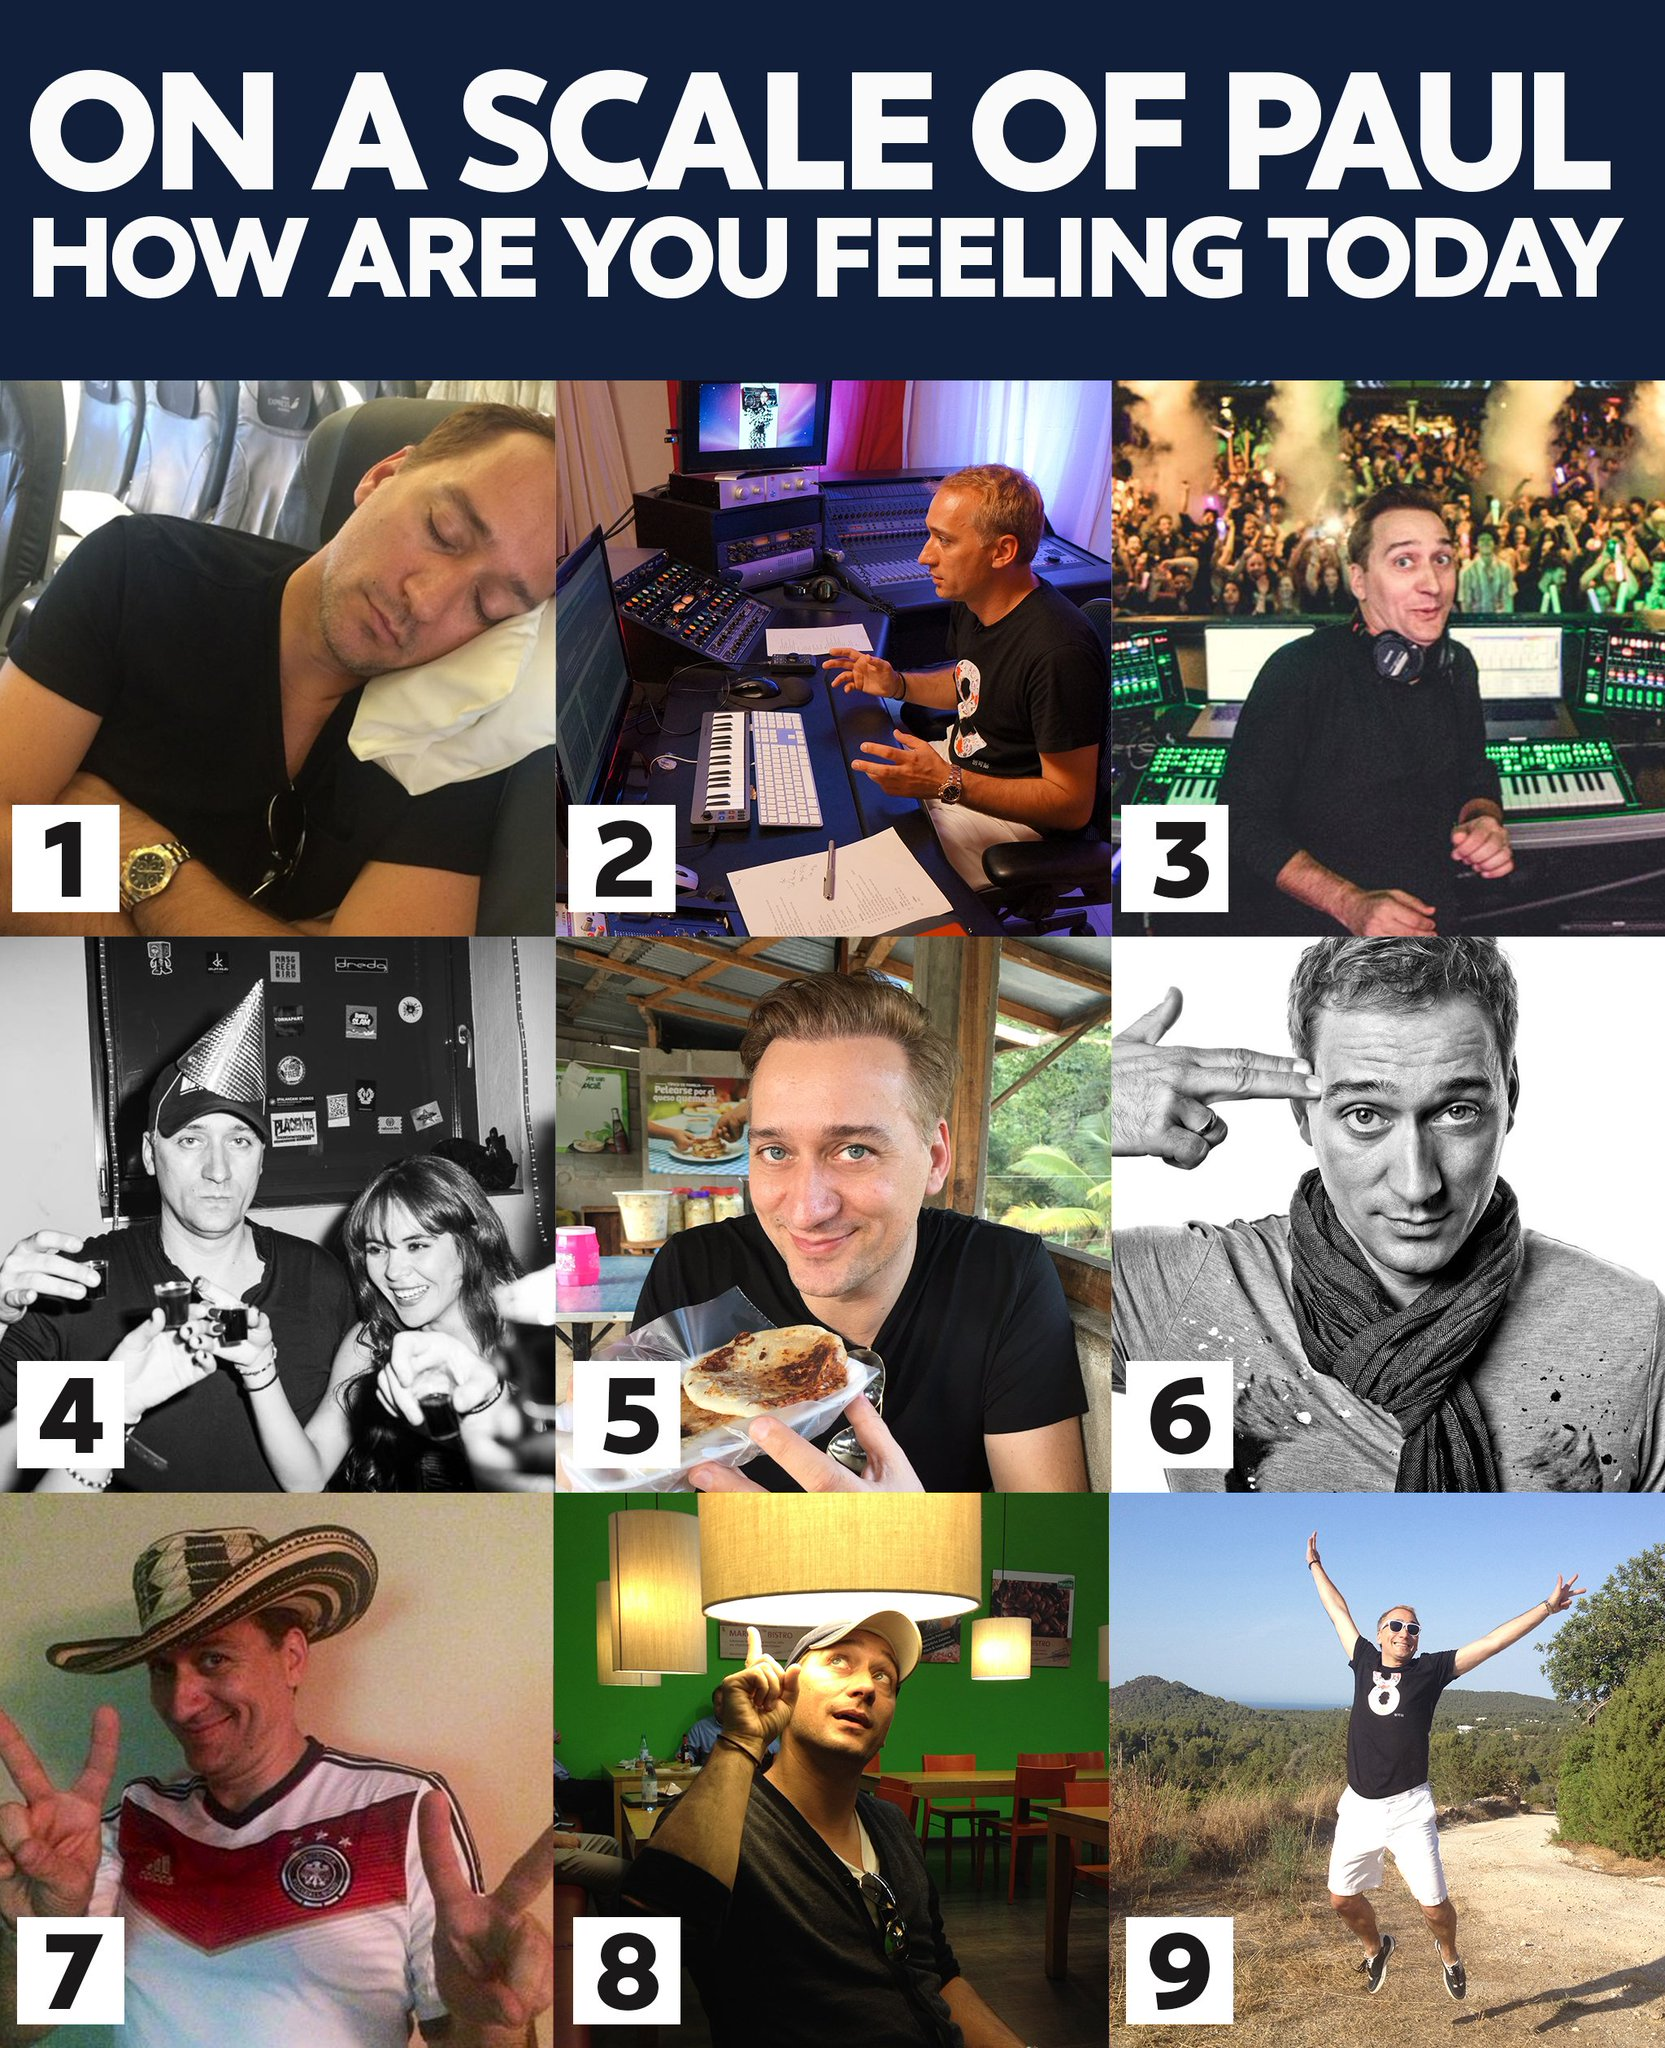 Mostly 1 today. And you? �� https://t.co/NpW4cdiqw3